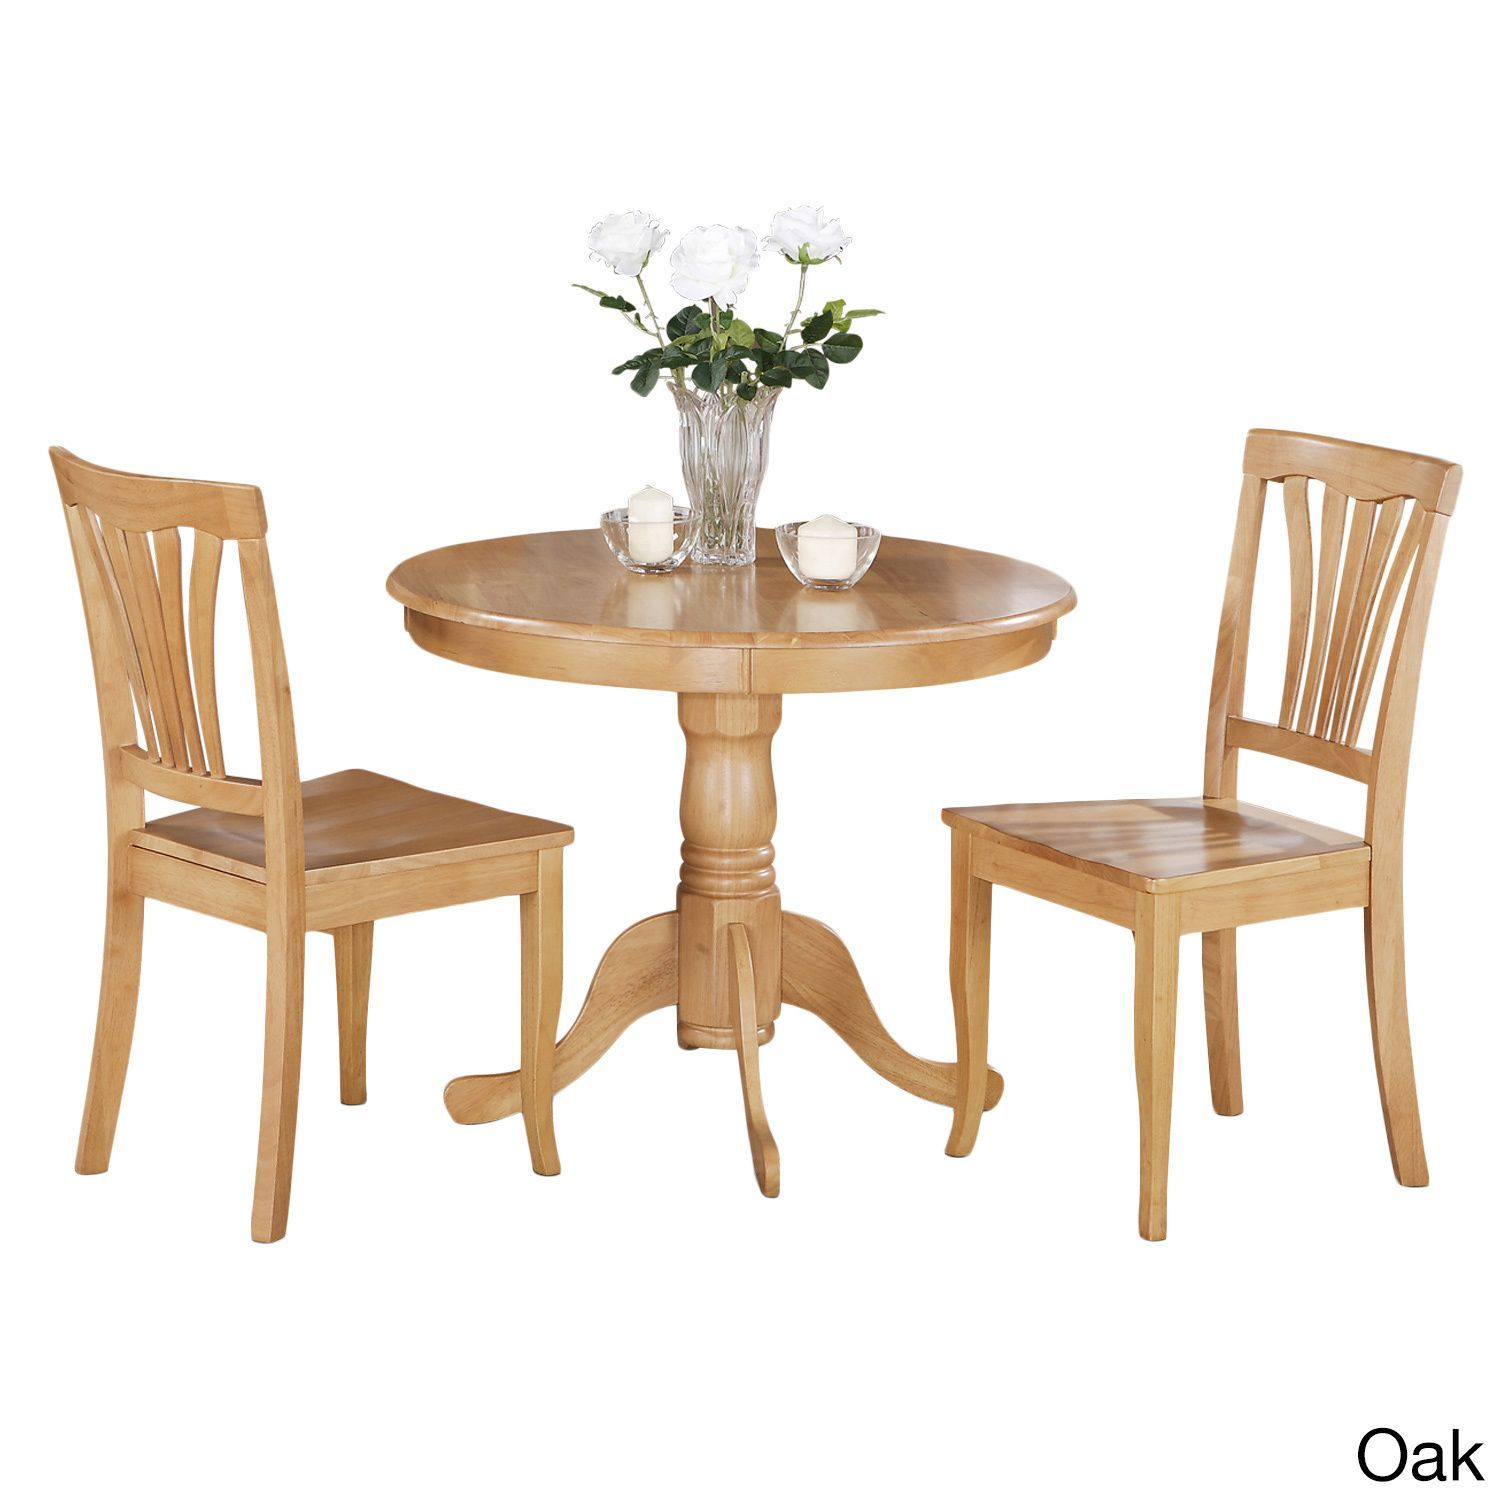 3 Piece Kitchen Nook Dining Set Small Table And 2 Chairs Oak Brown Size Sets